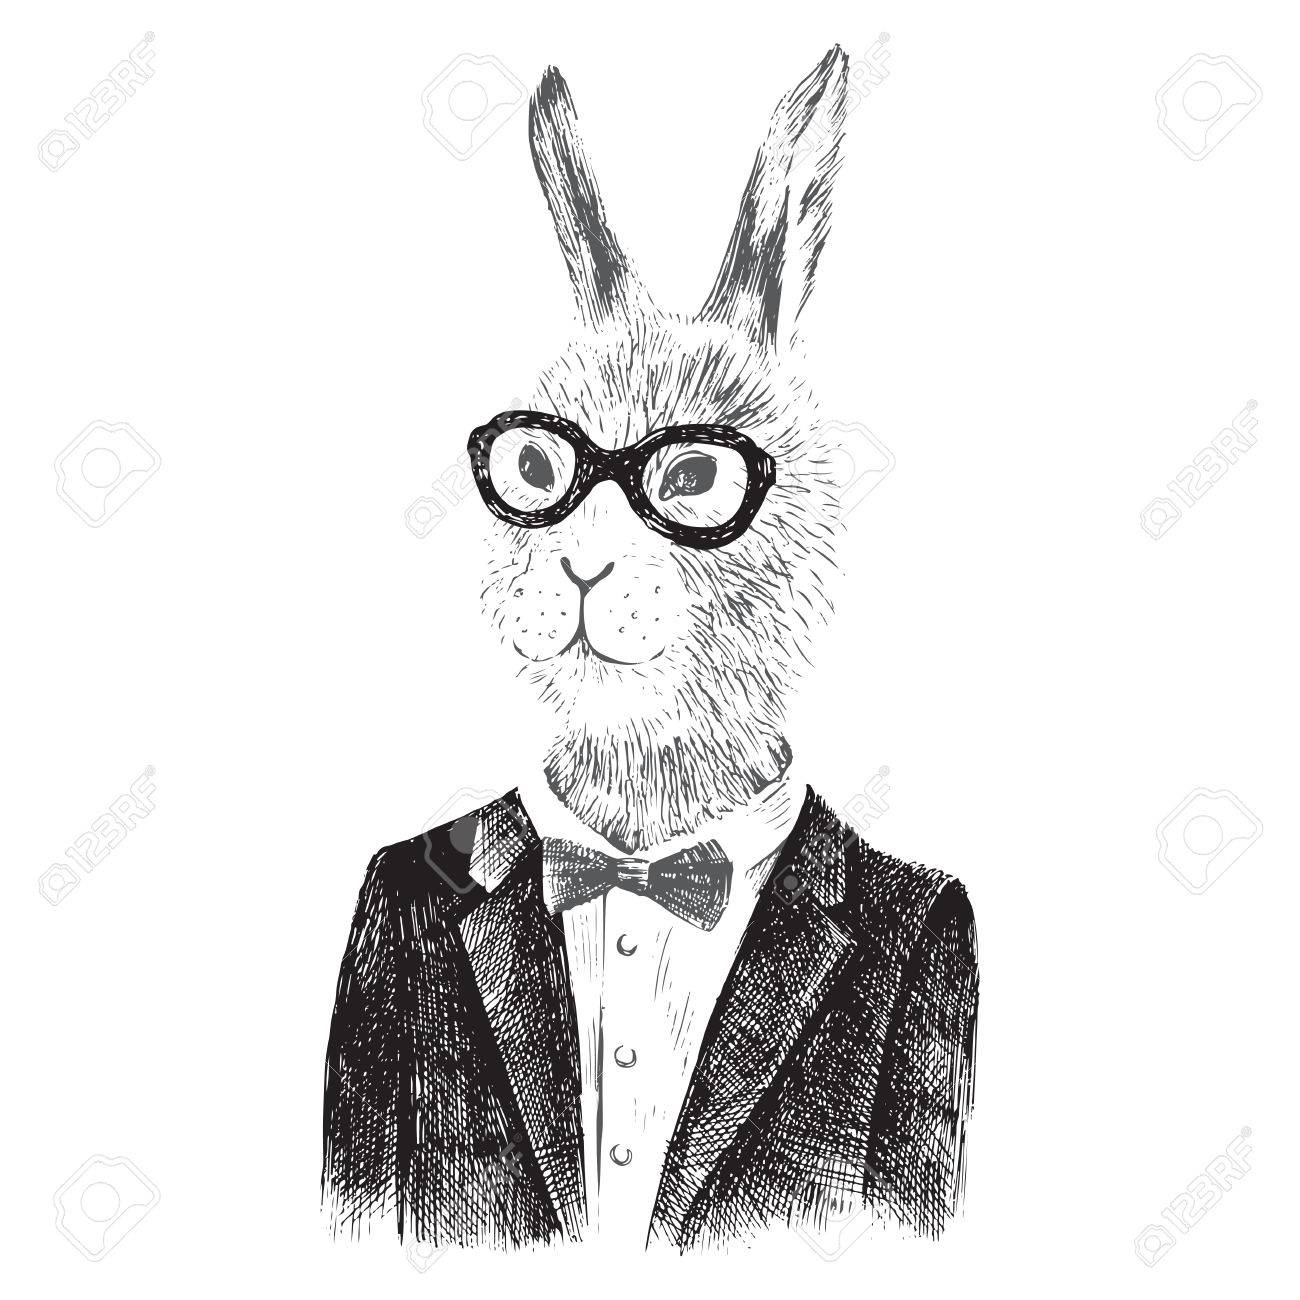 Hand drawn dressed up bunny boy in hipster style - 55367192